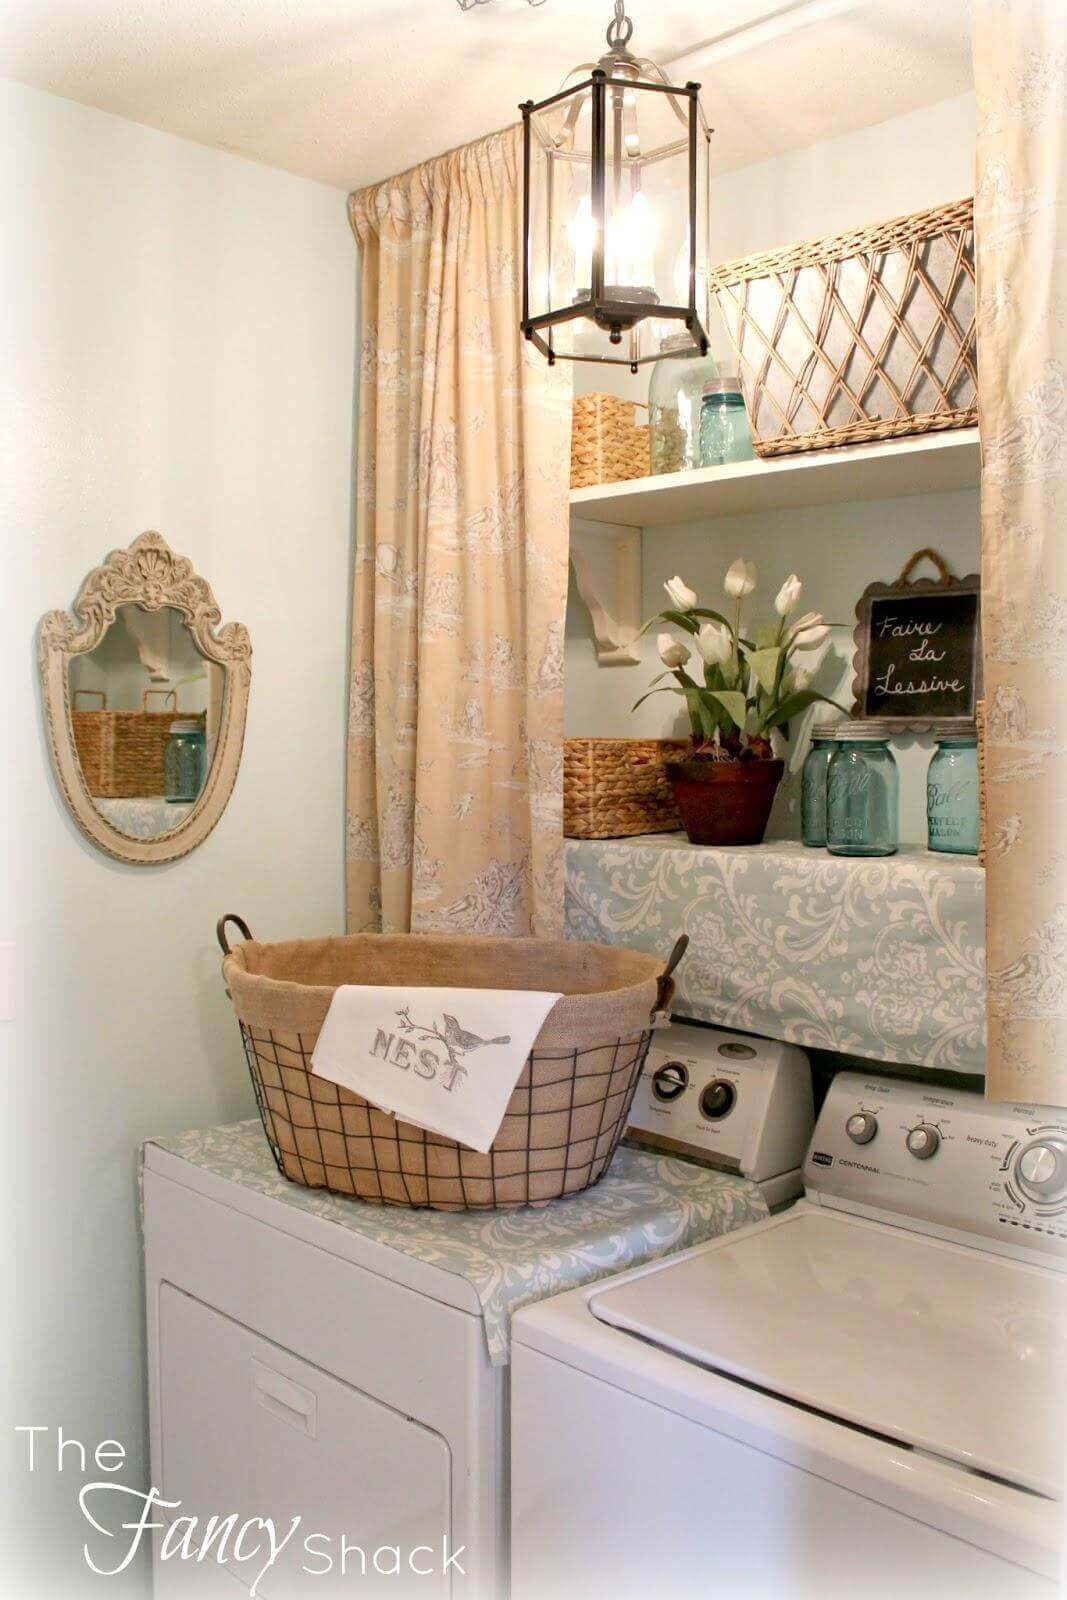 Overhead Chic Laundry Closet vs Cabinets